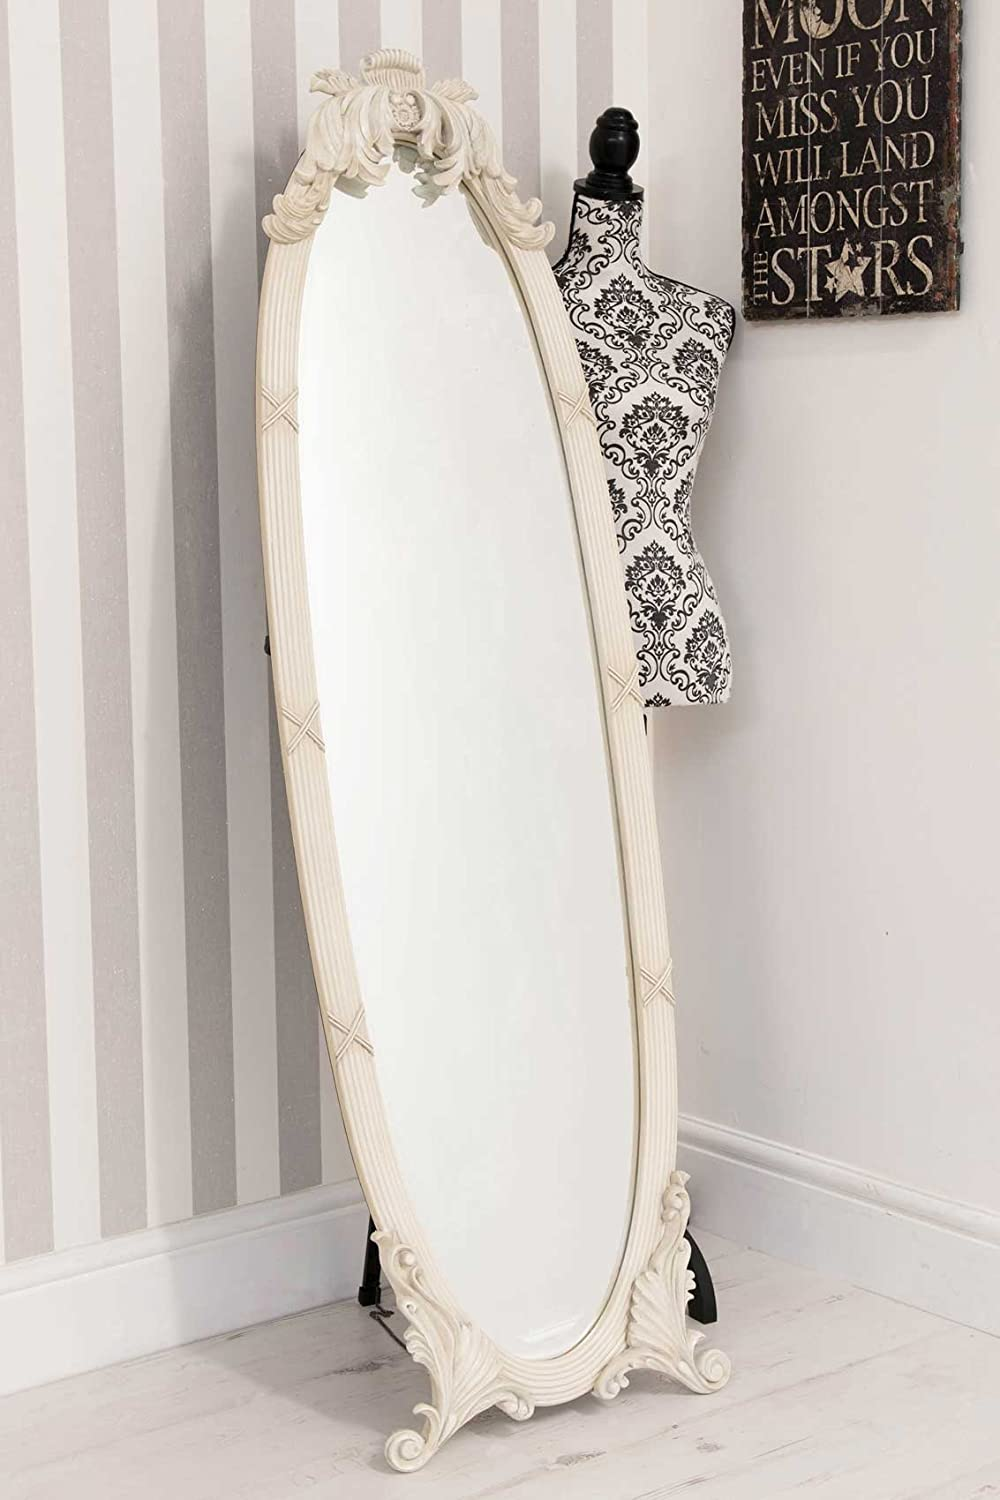 Large Antique Ornate Cream Oval Cheval Mirror 5ft5 X 1ft7 Amazon Co Uk Kitchen Home